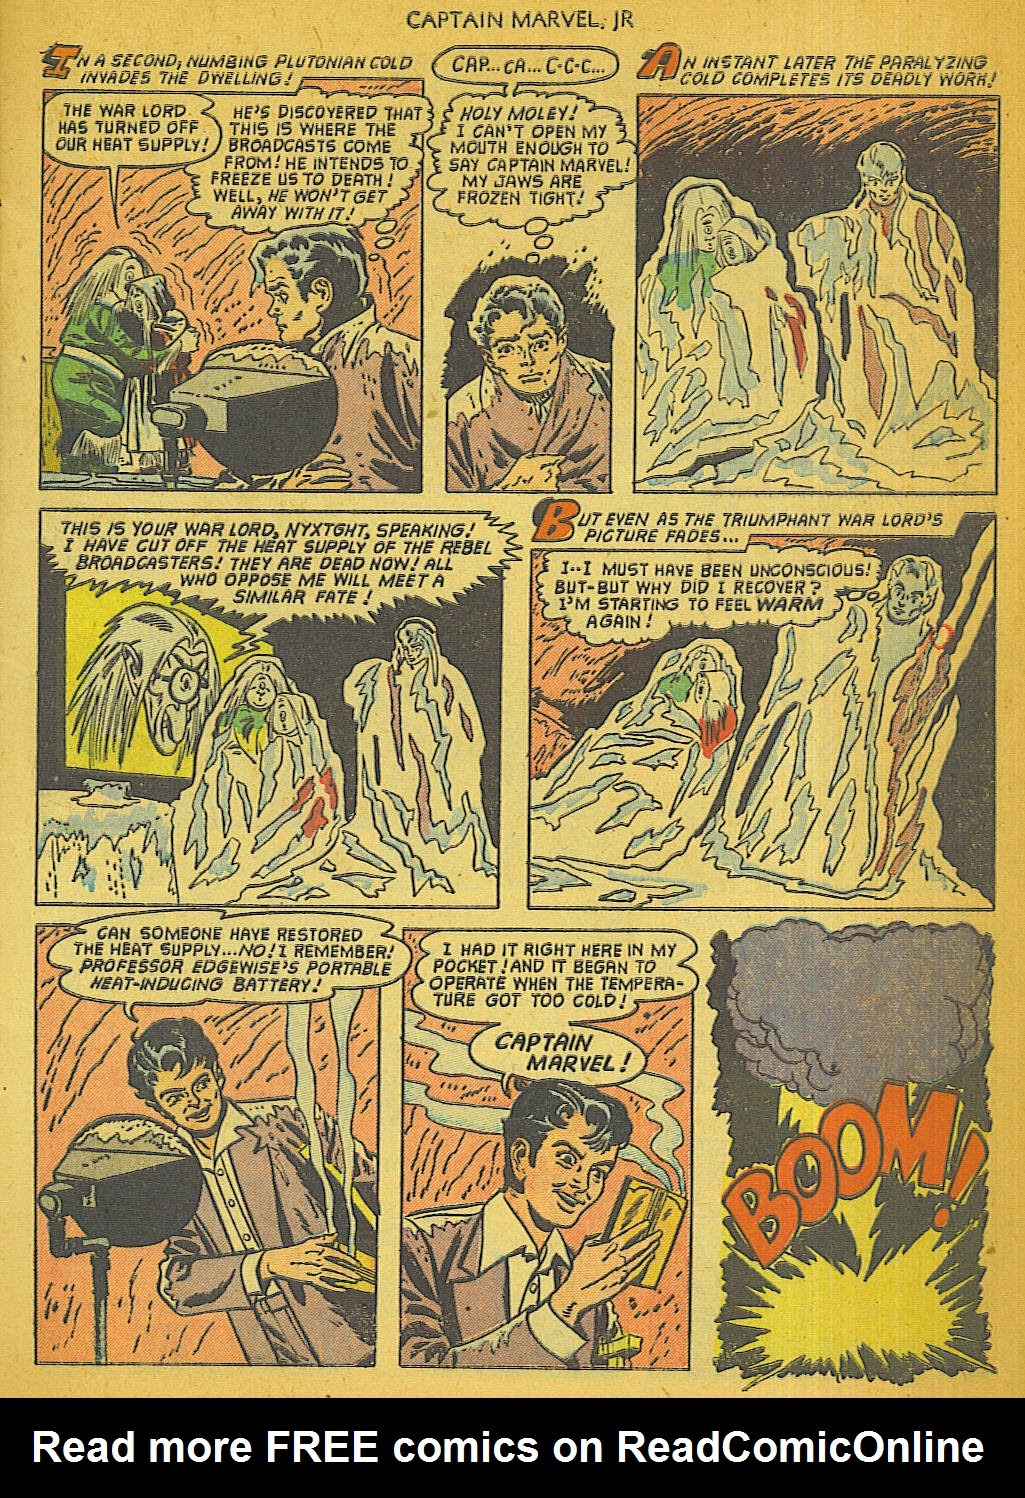 Captain Marvel, Jr. issue 111 - Page 8